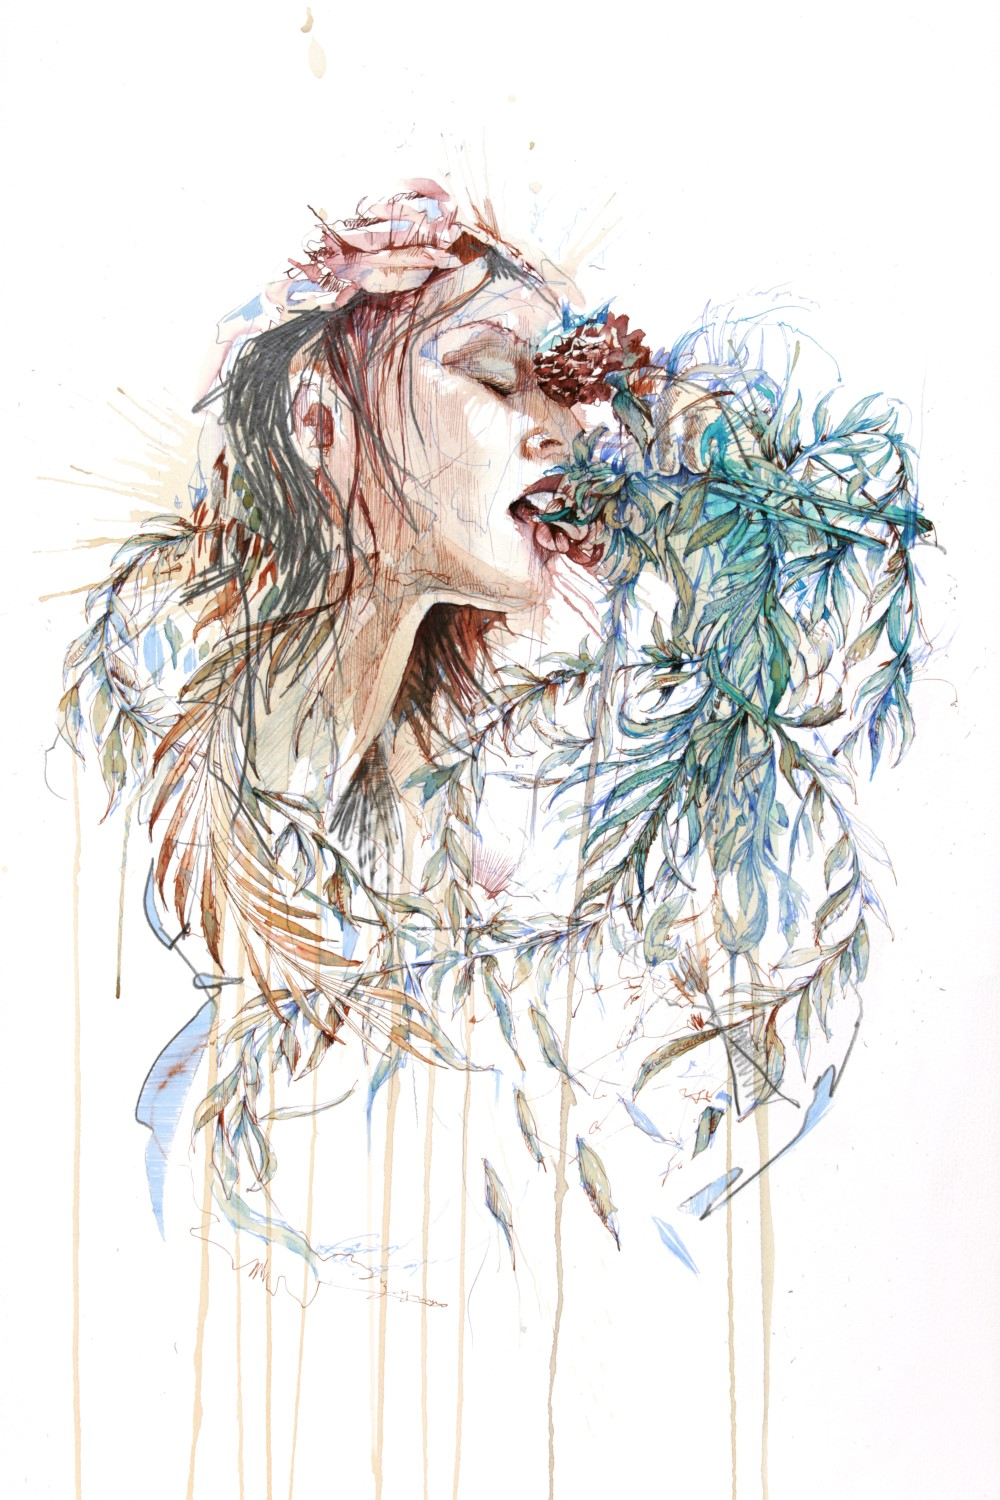 Devour by Carne Griffiths